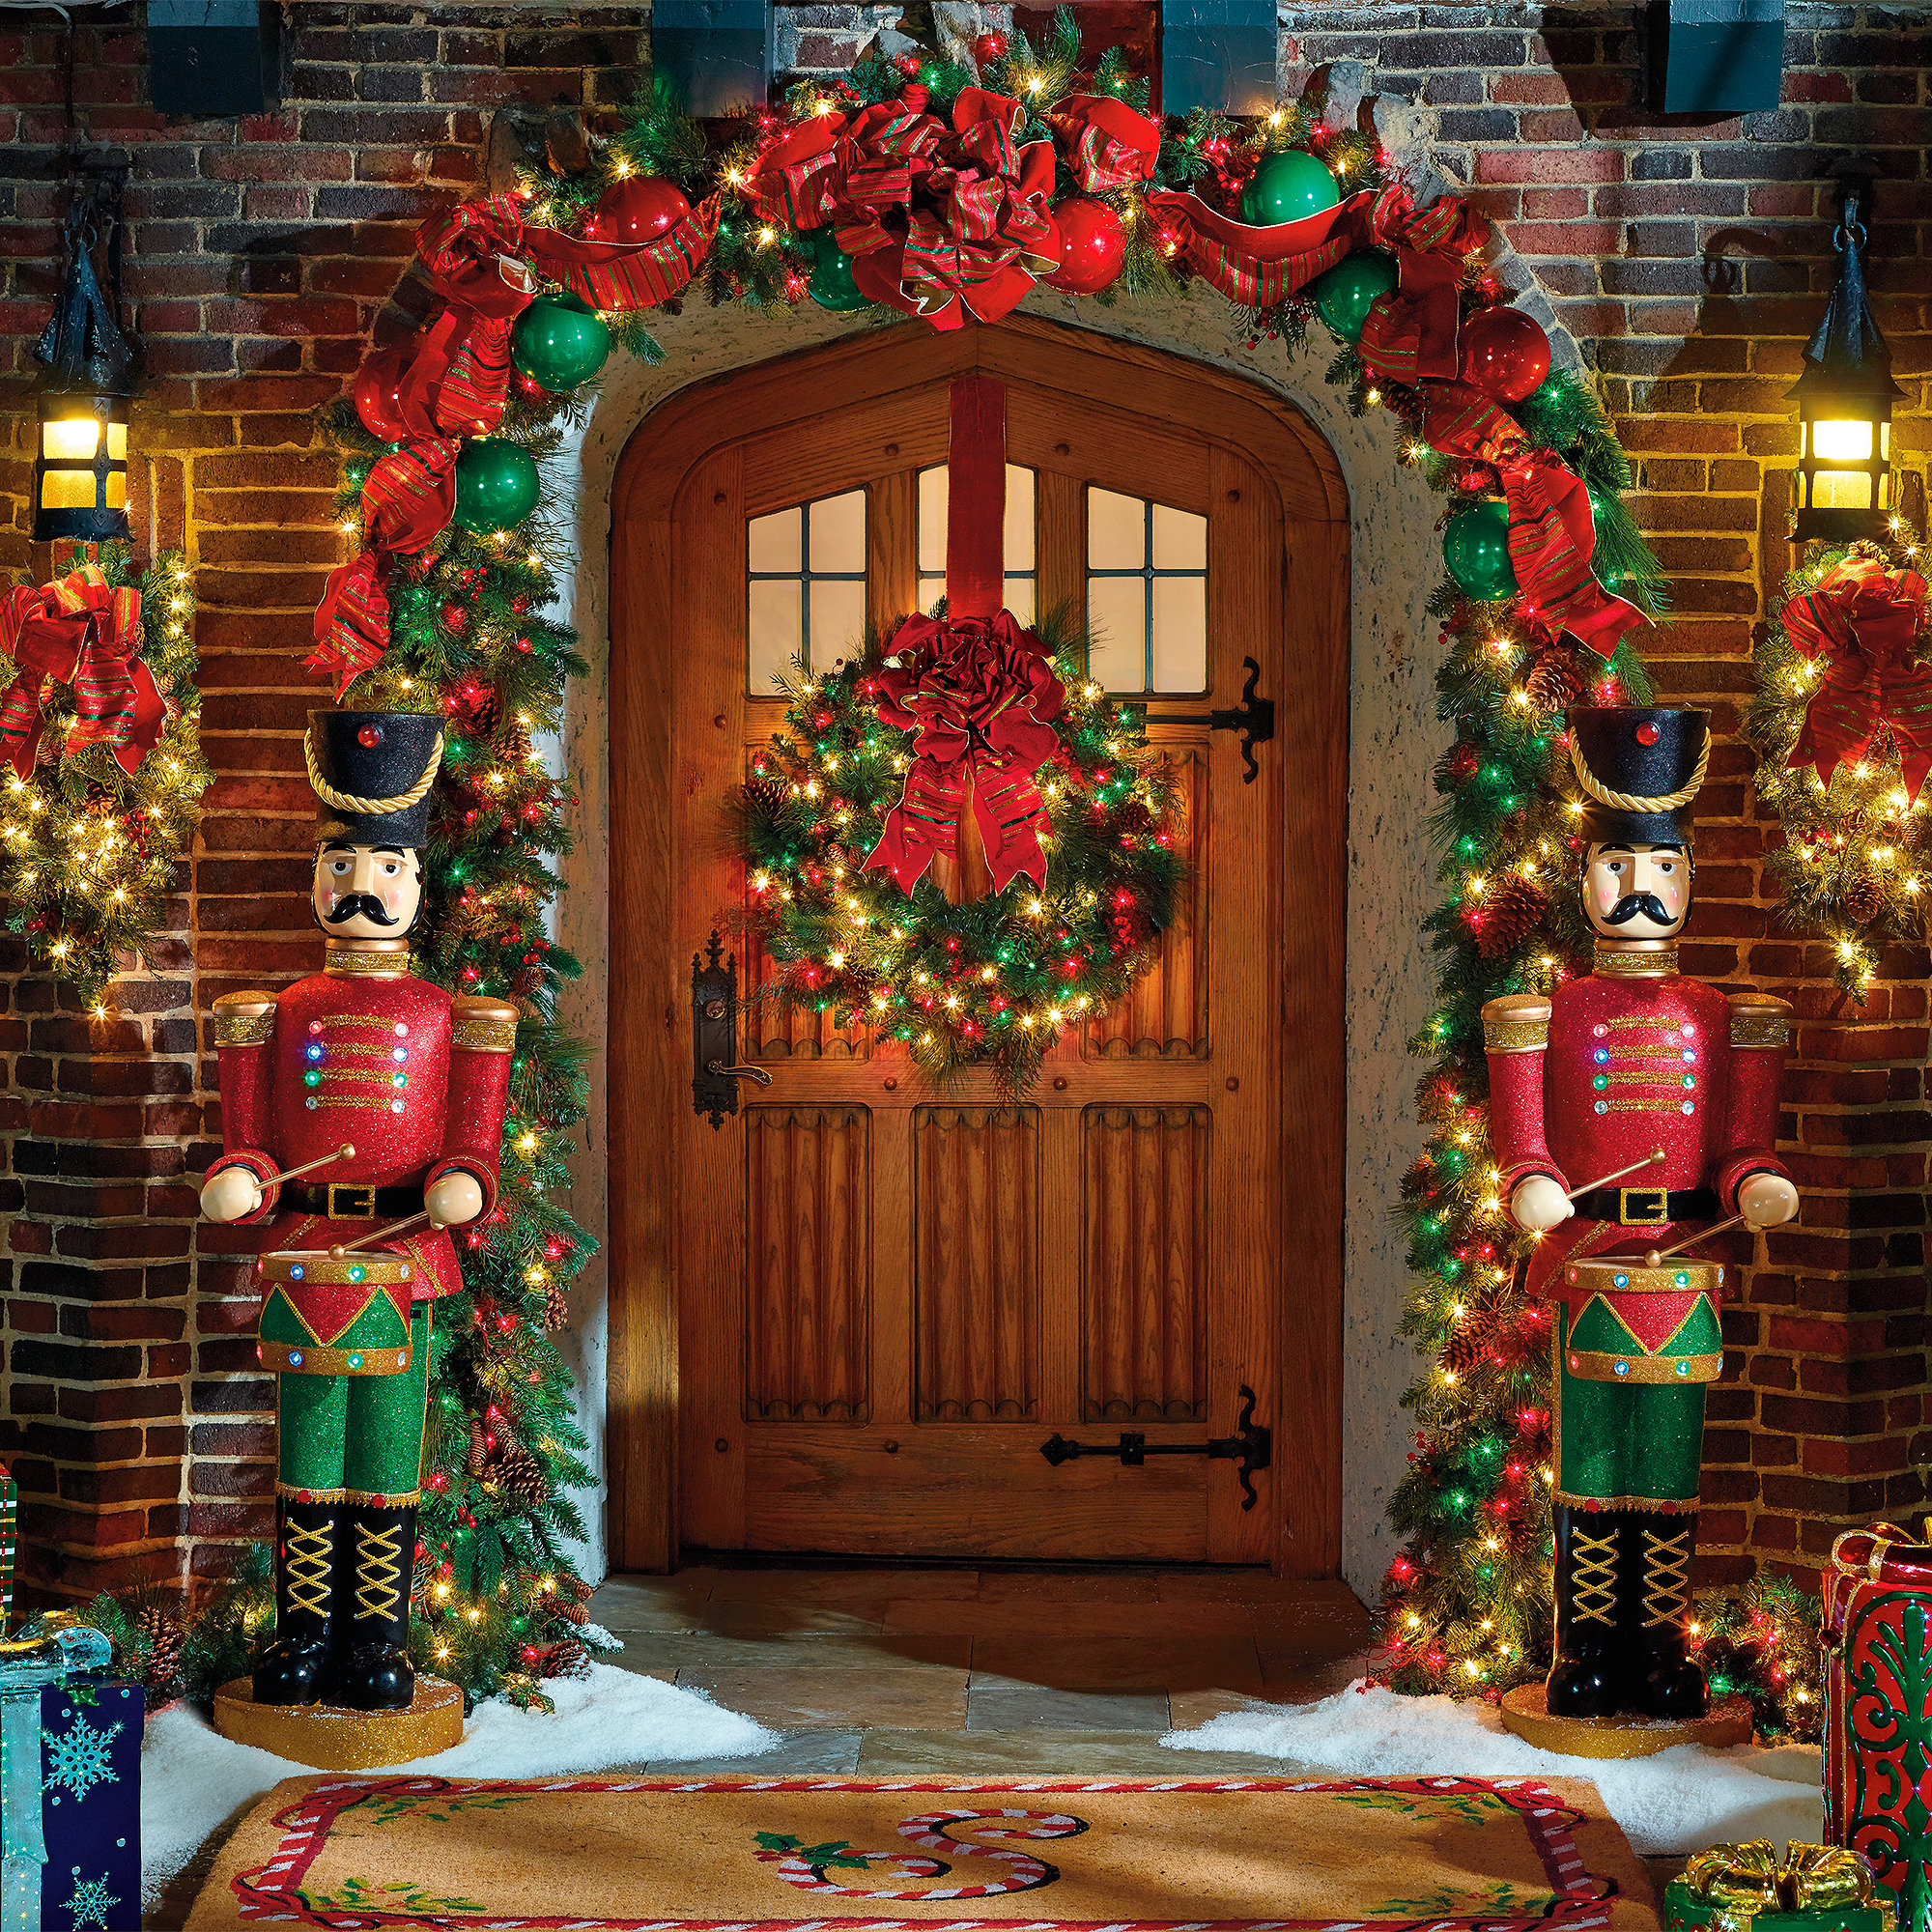 Christmas Decorations - Holiday Decorations - Christmas Decor